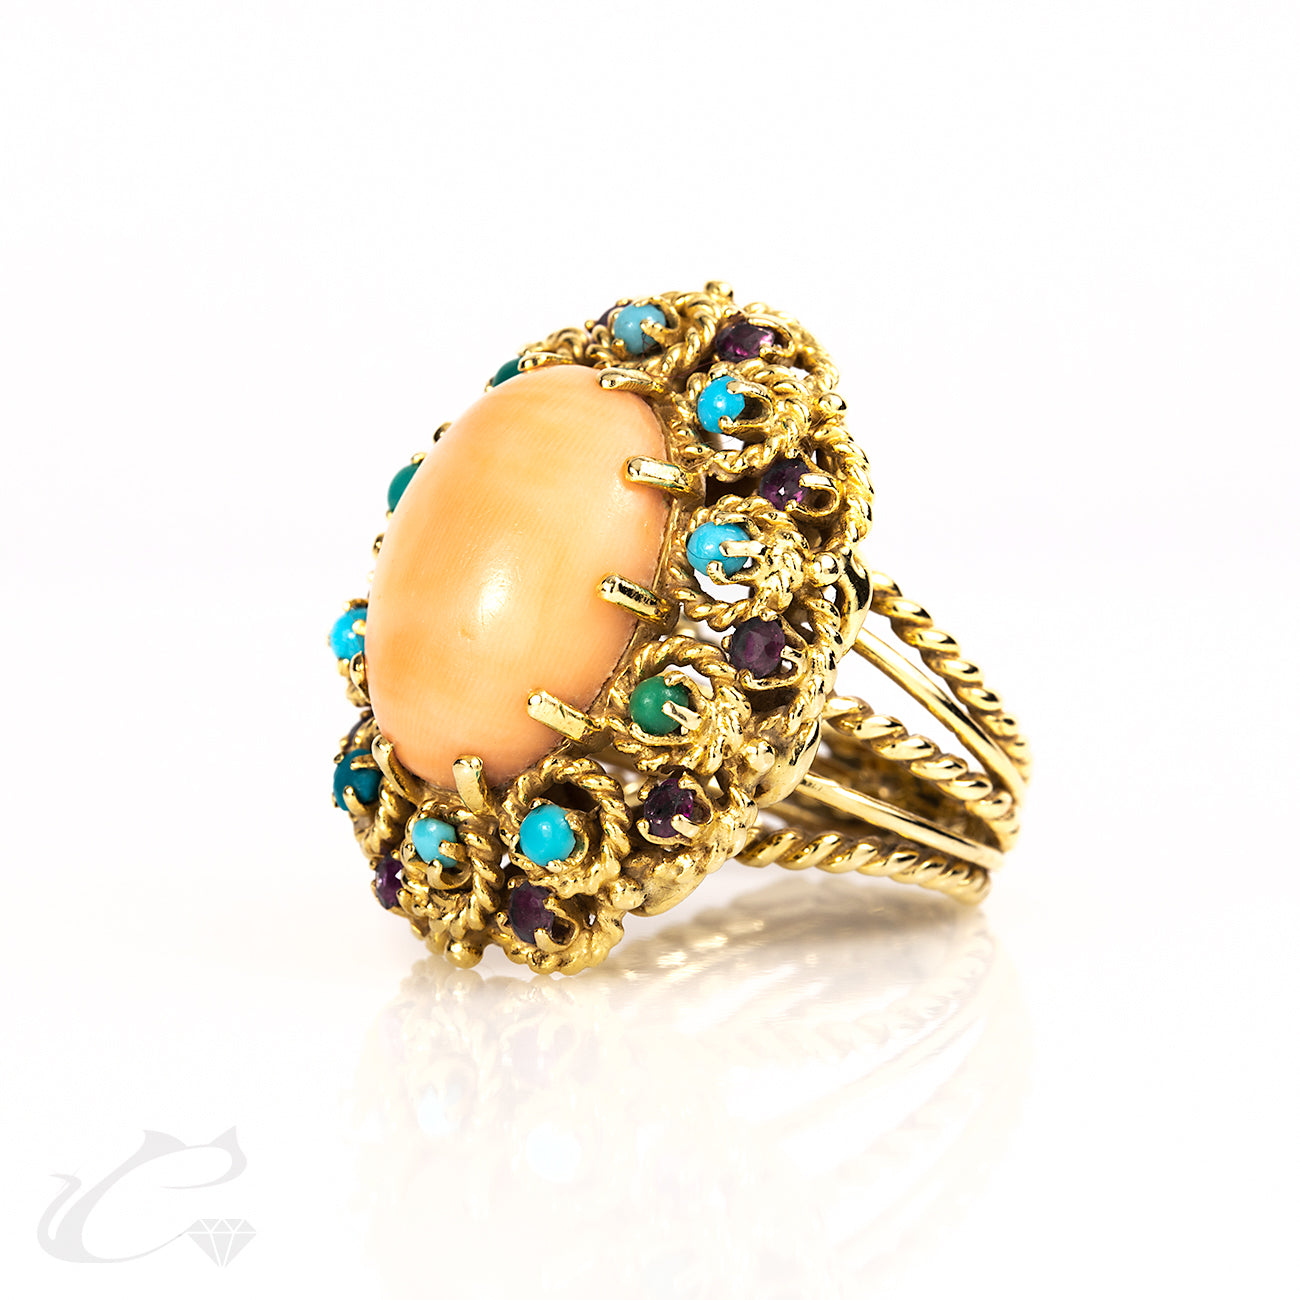 Coral, Turquoise, and Ruby Estate Ring